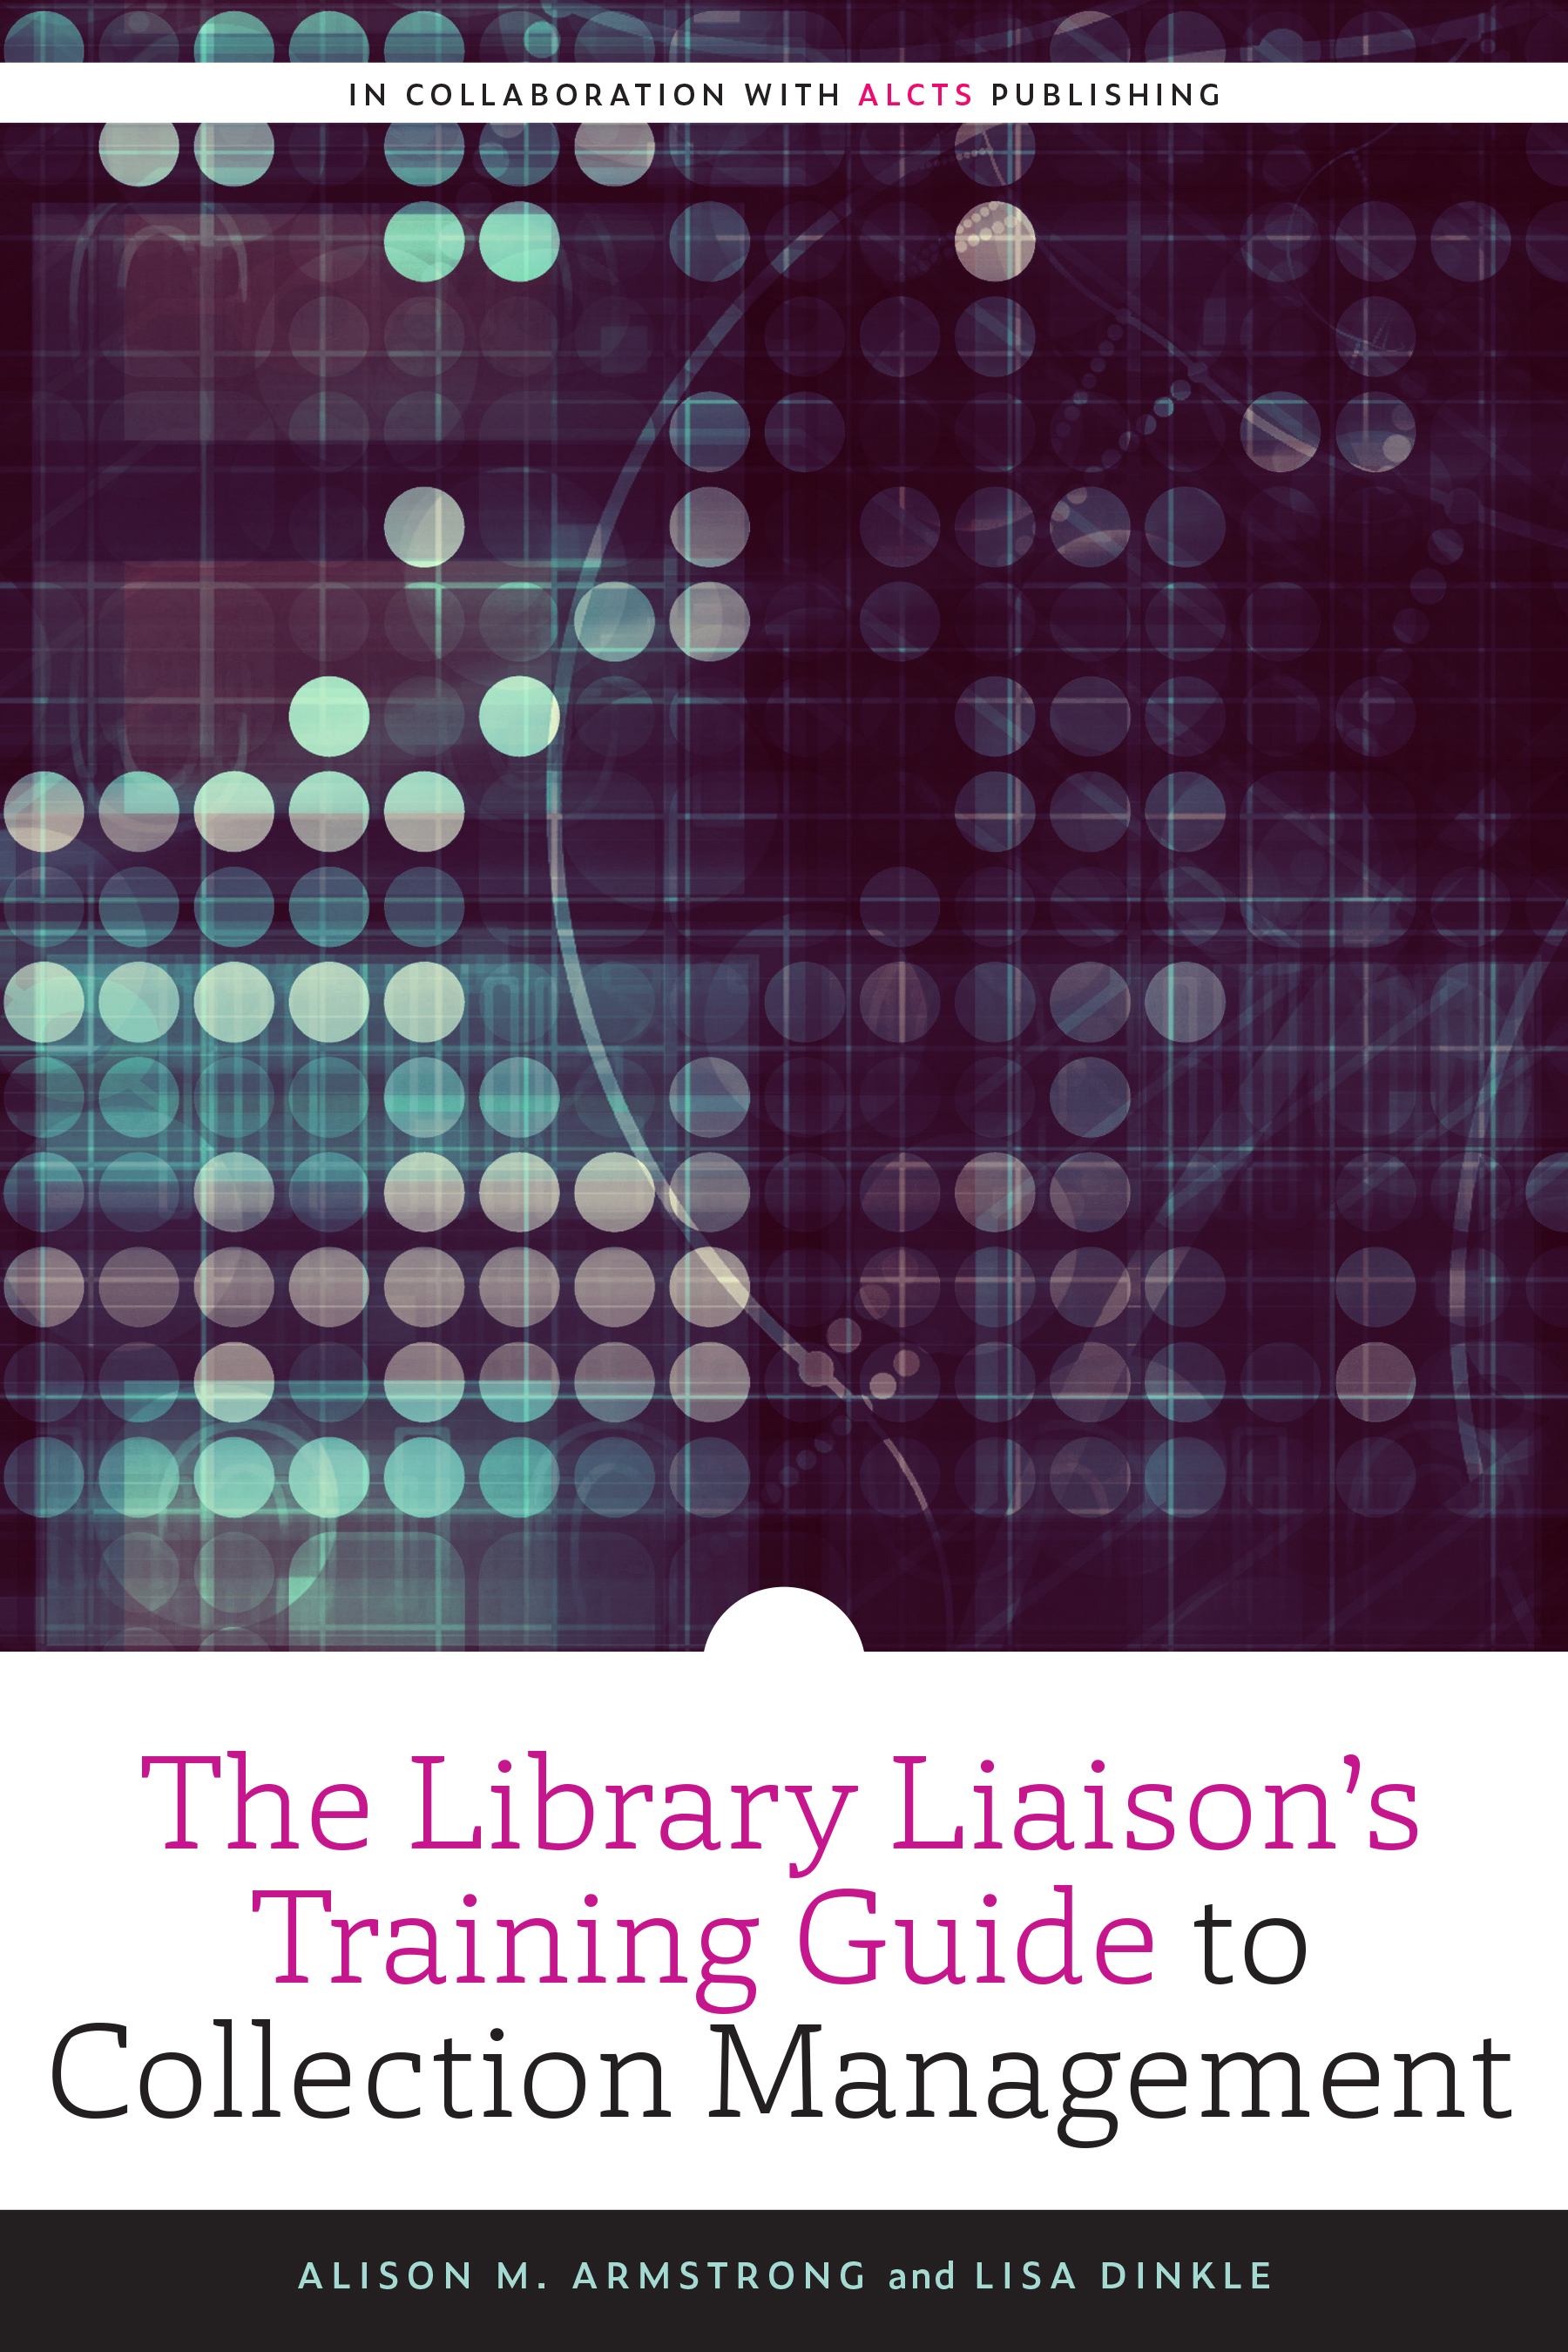 The Library Liaison's Training Guide to Collection Management